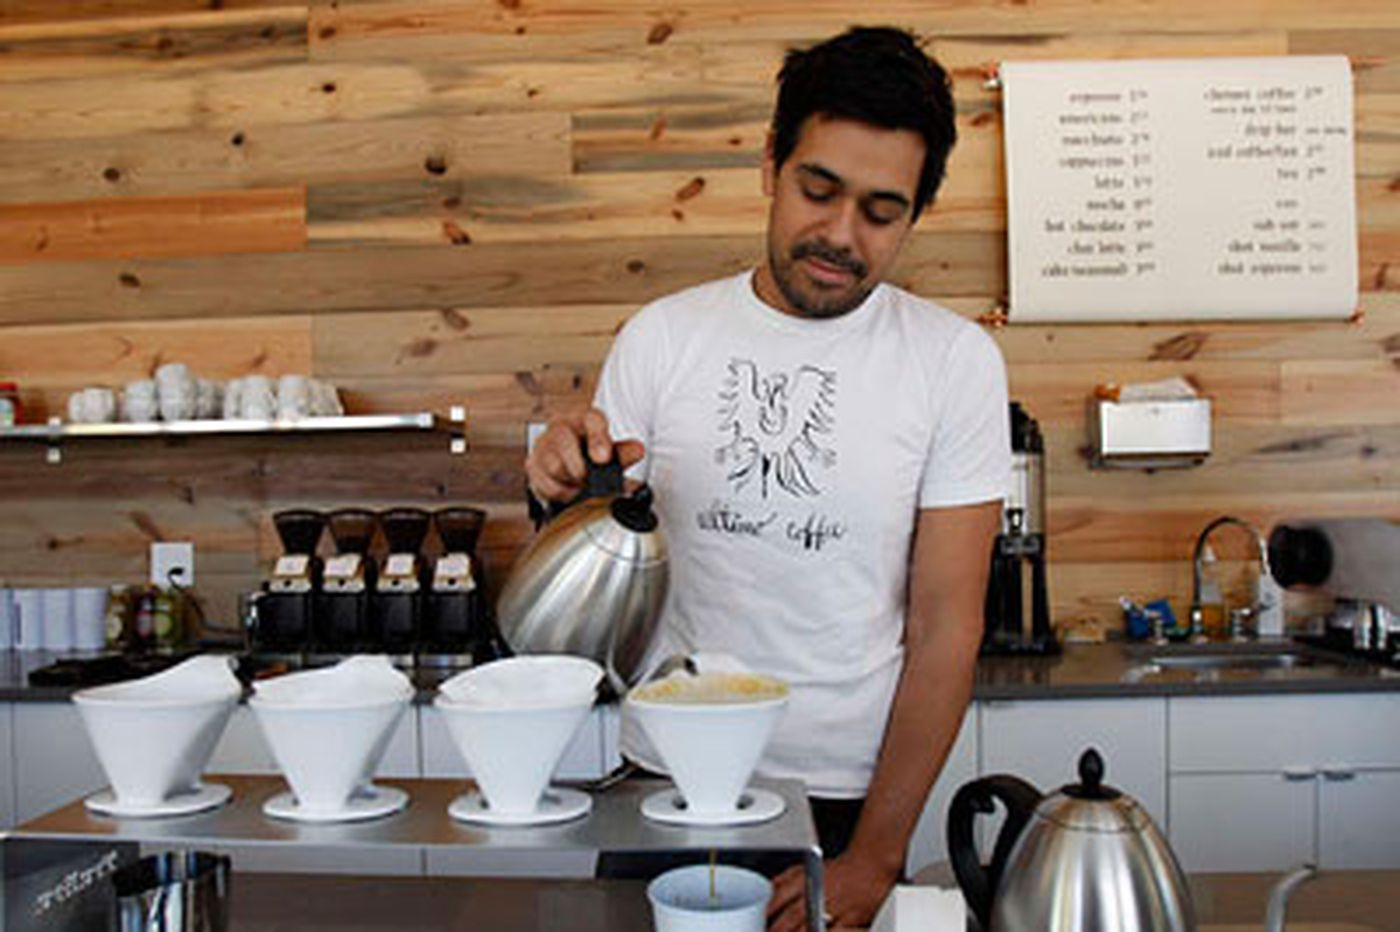 Coffee competition perking up in several Philadelphia neighborhoods